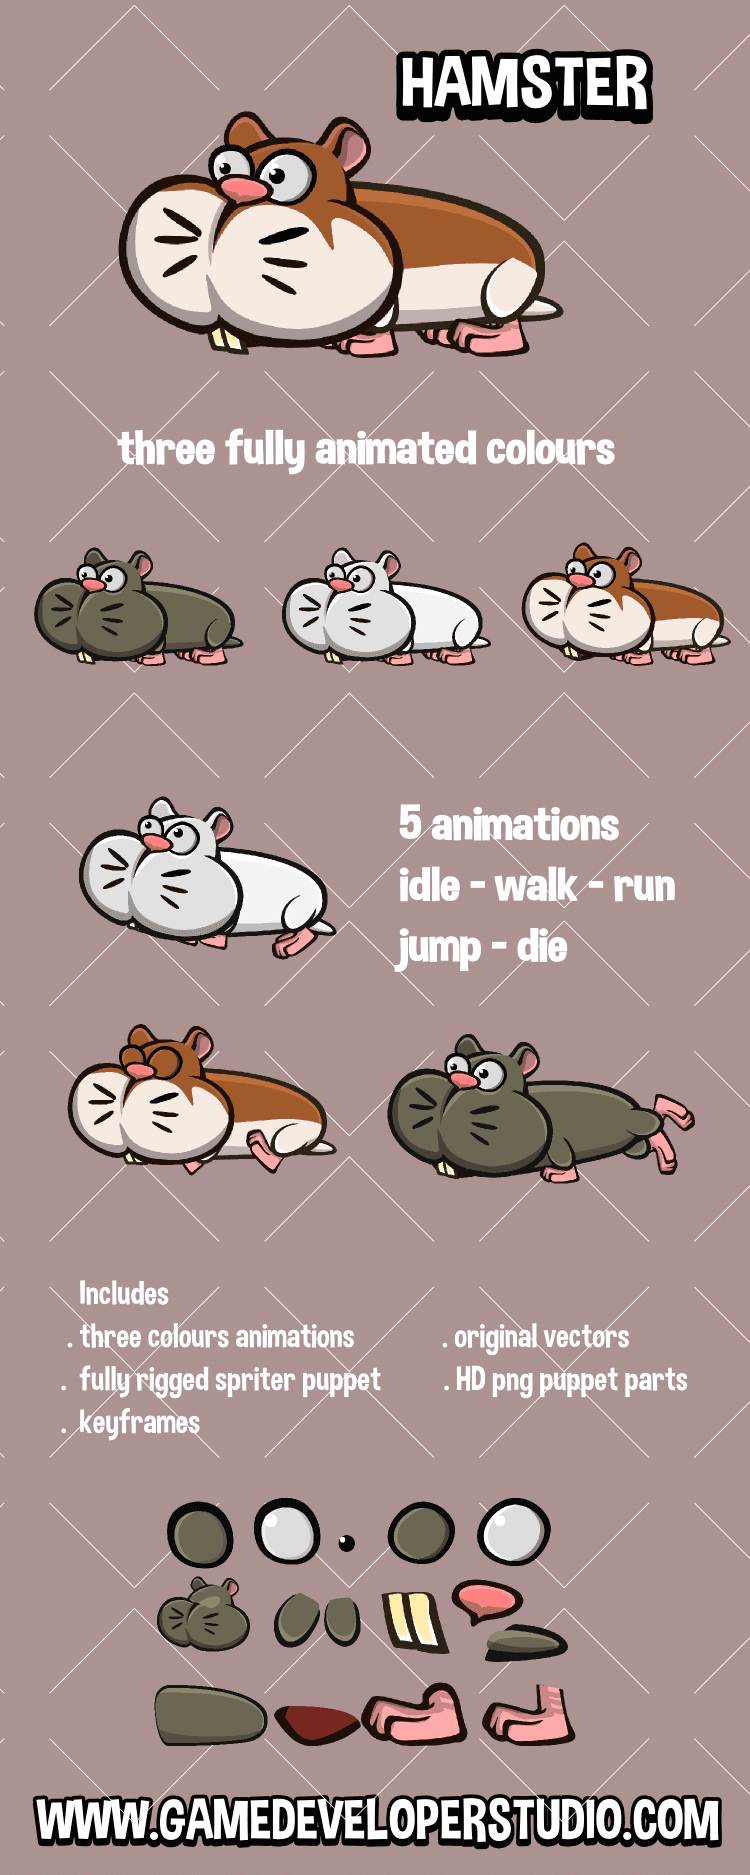 Animated hamster 2D game character